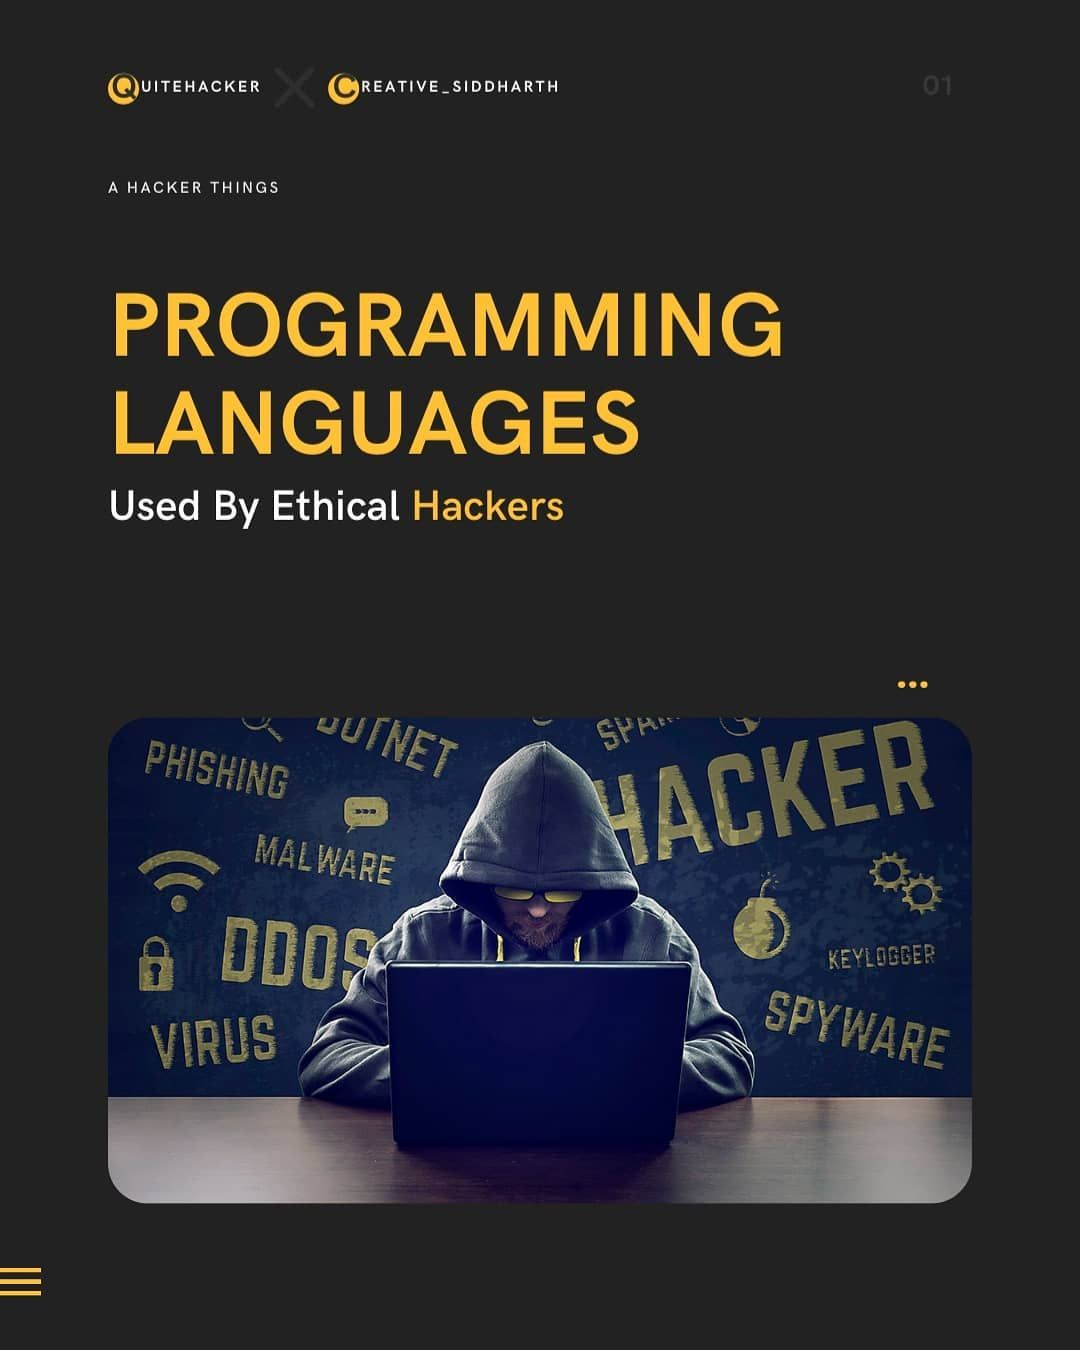 Programming languages used by ethical hackers